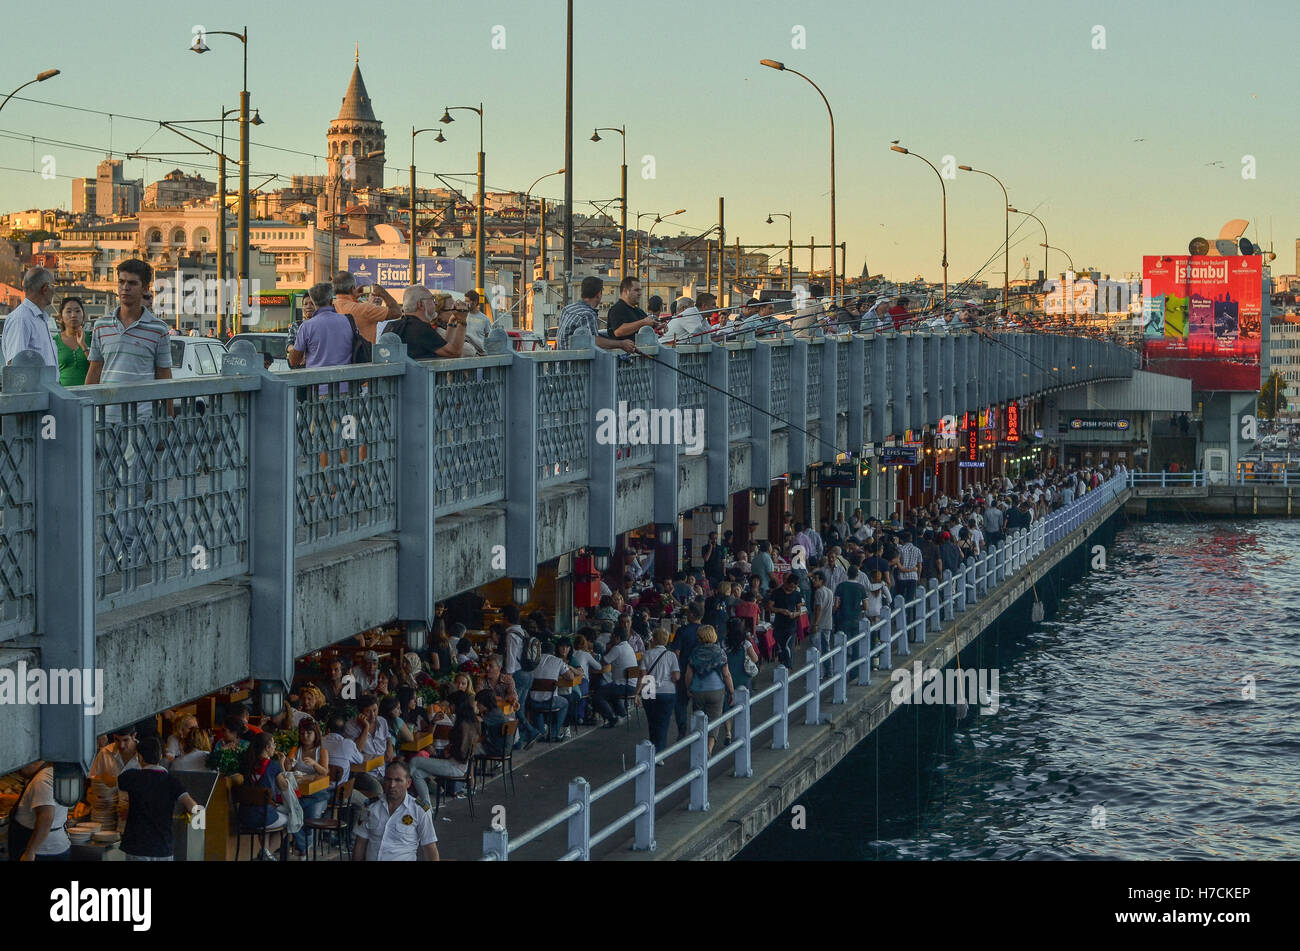 Galata bridge, that links the two banks of the Golden Horn in Istanbul.  Galata Tower can be seen dominating the - Stock Image